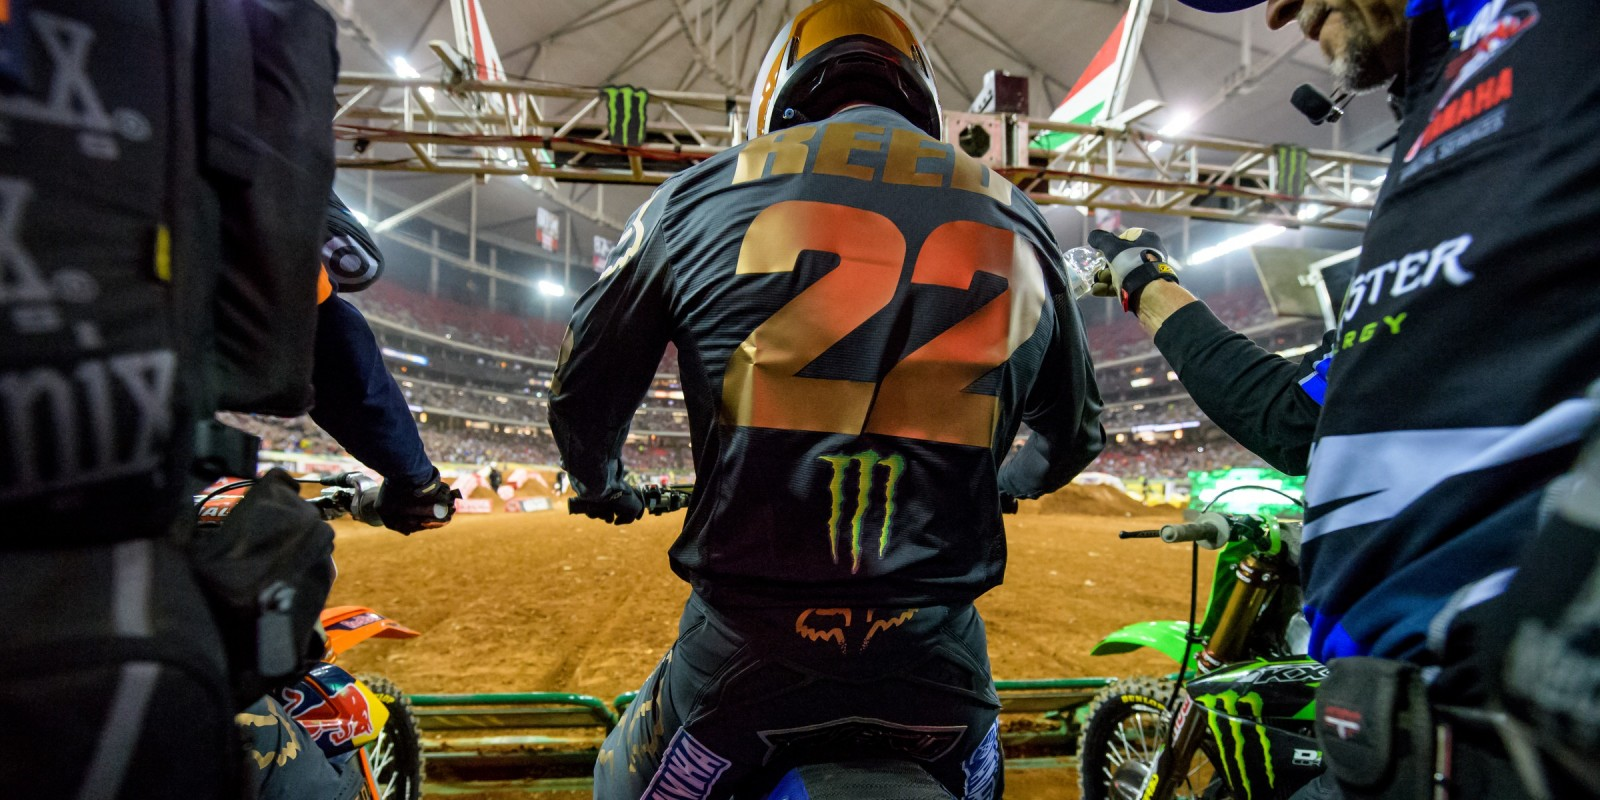 Chad Reed action images at Atlanta Supercross